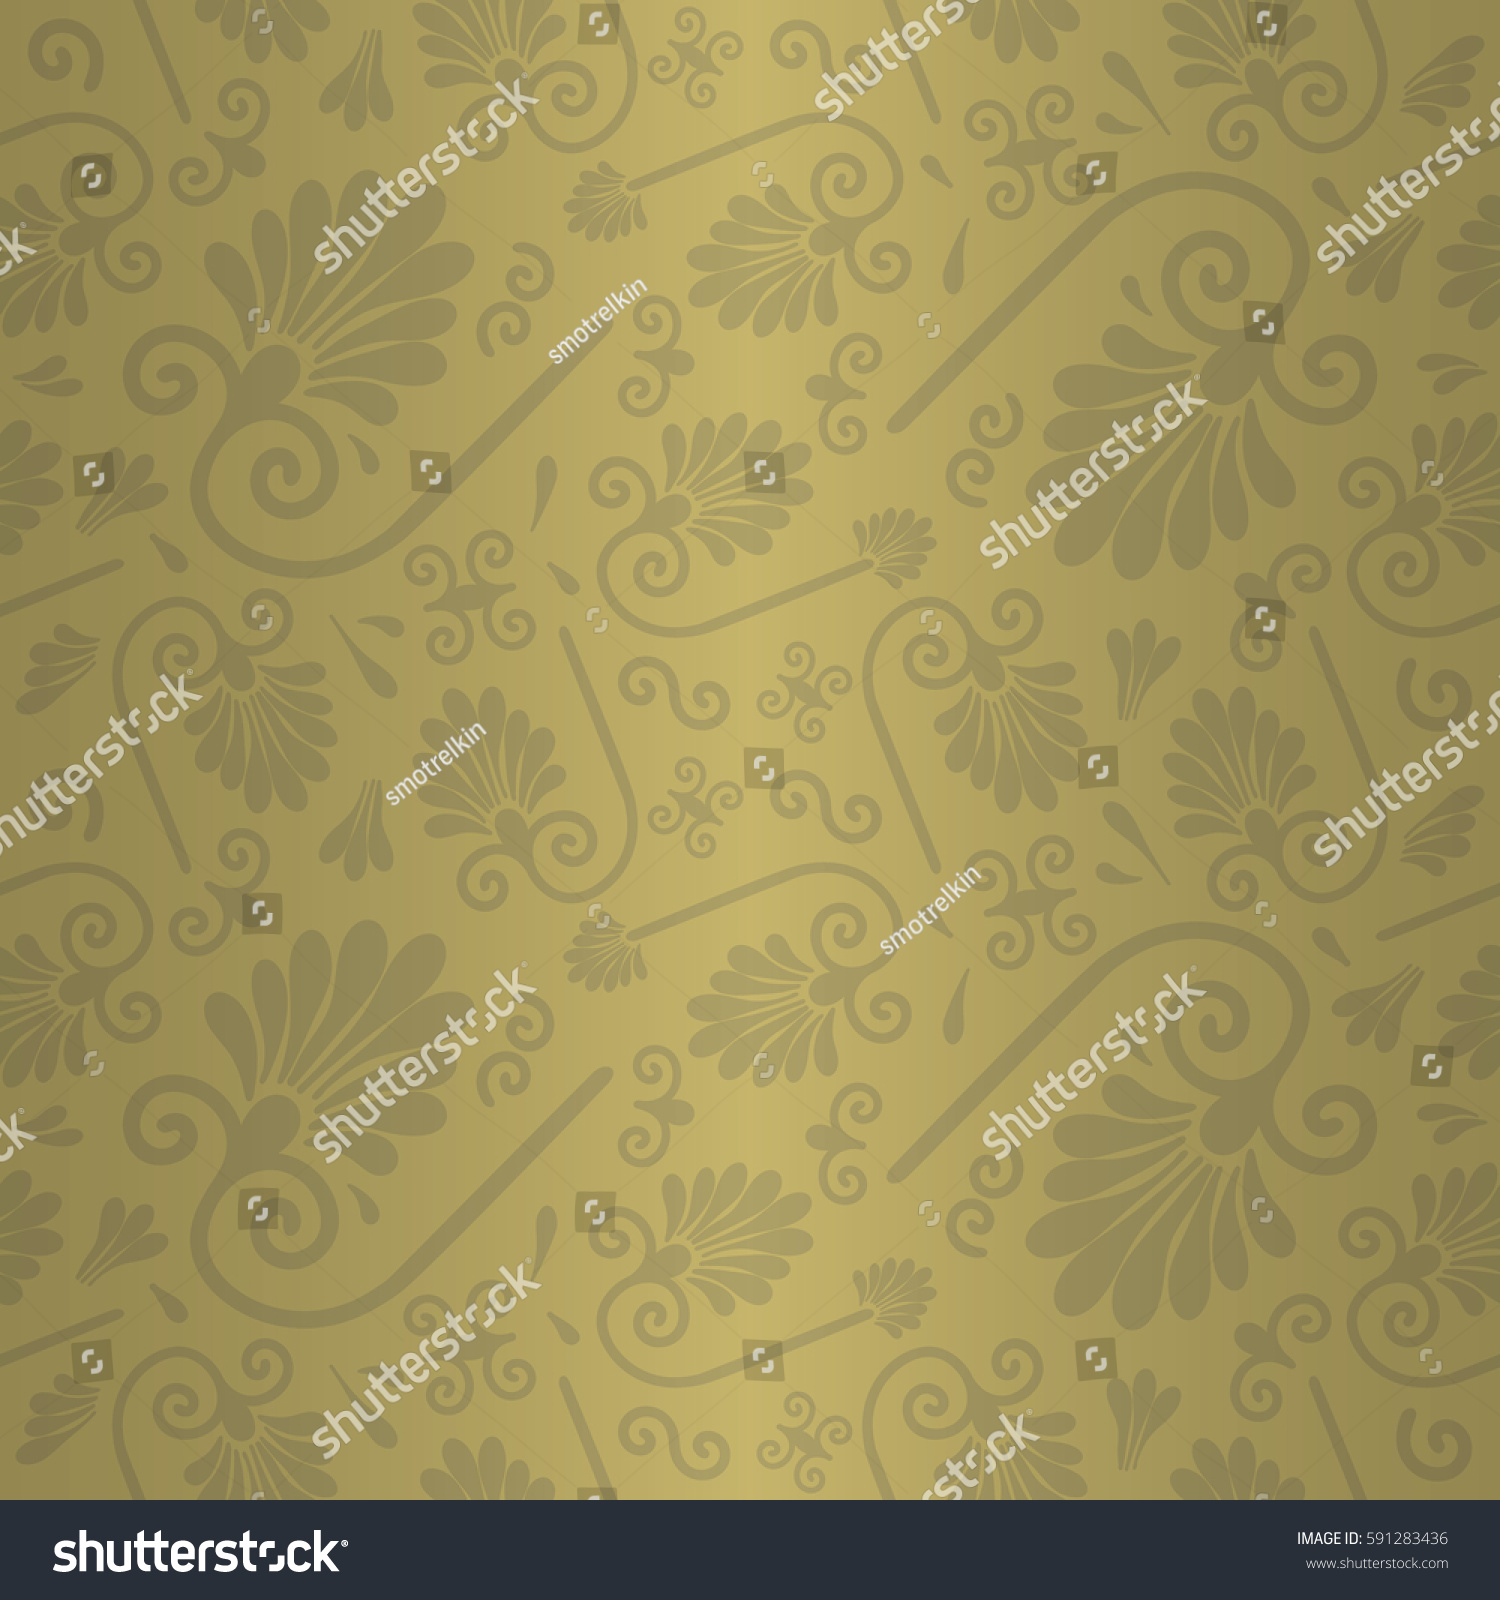 Soft Brown Yellow Beige Decorative Seamless Stock Vector ...